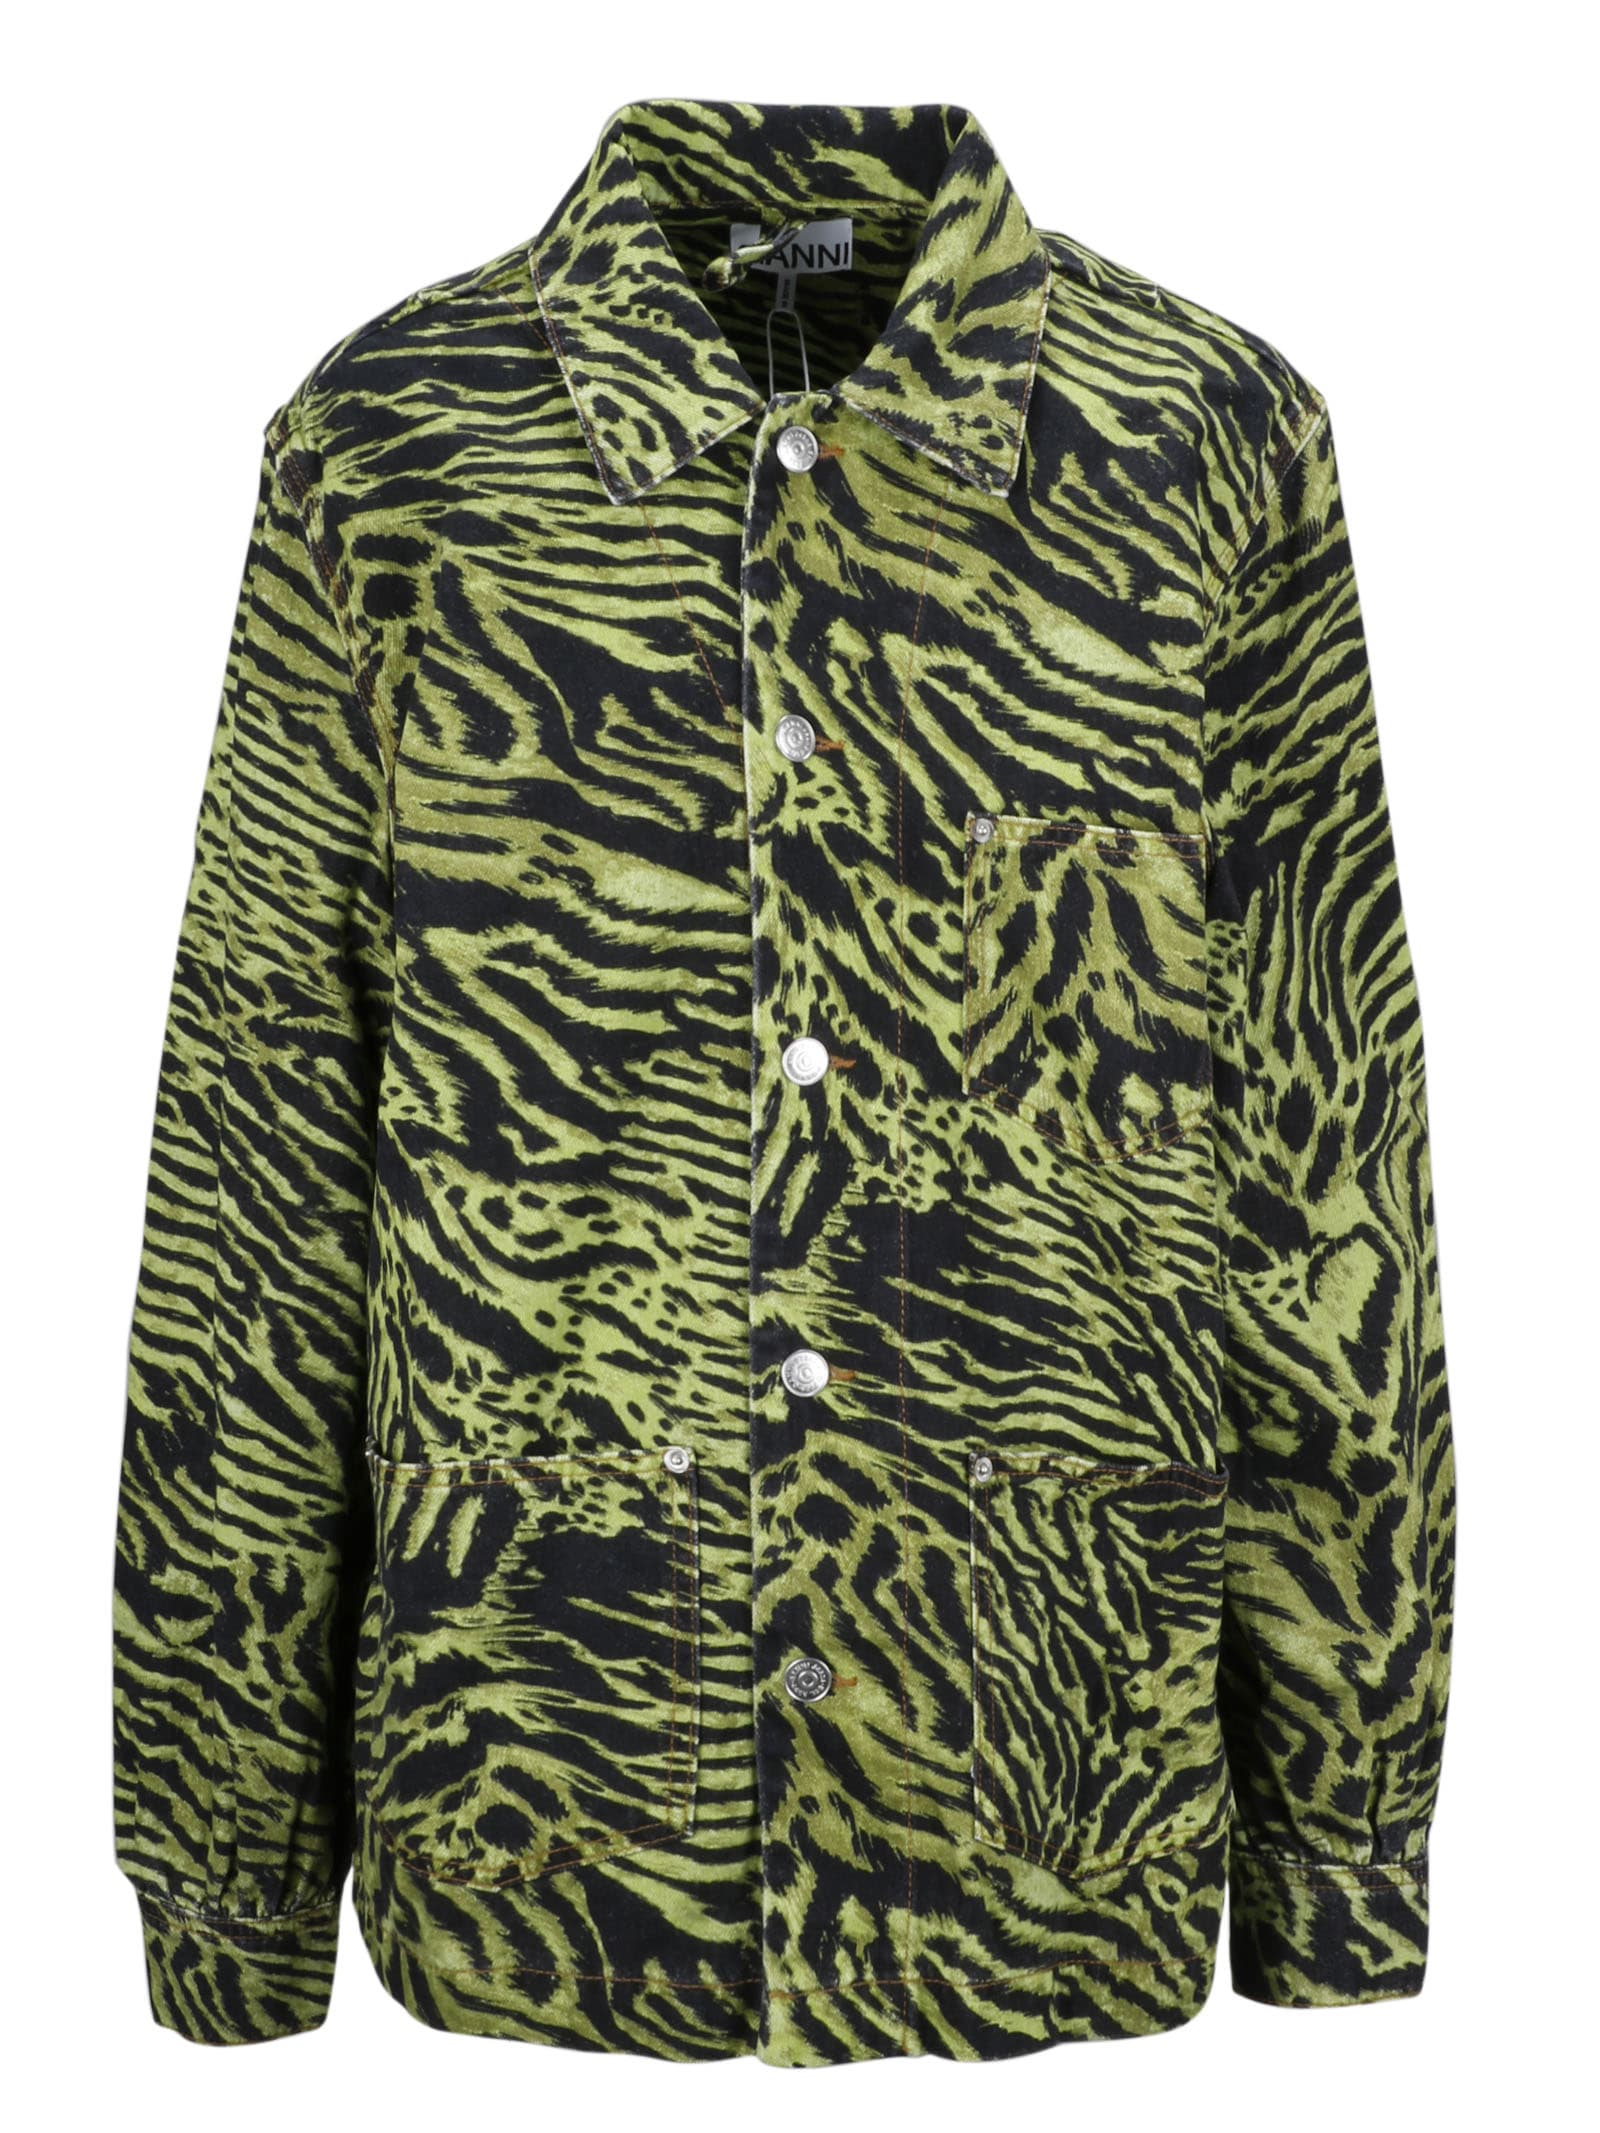 Ganni Jackets JACKET